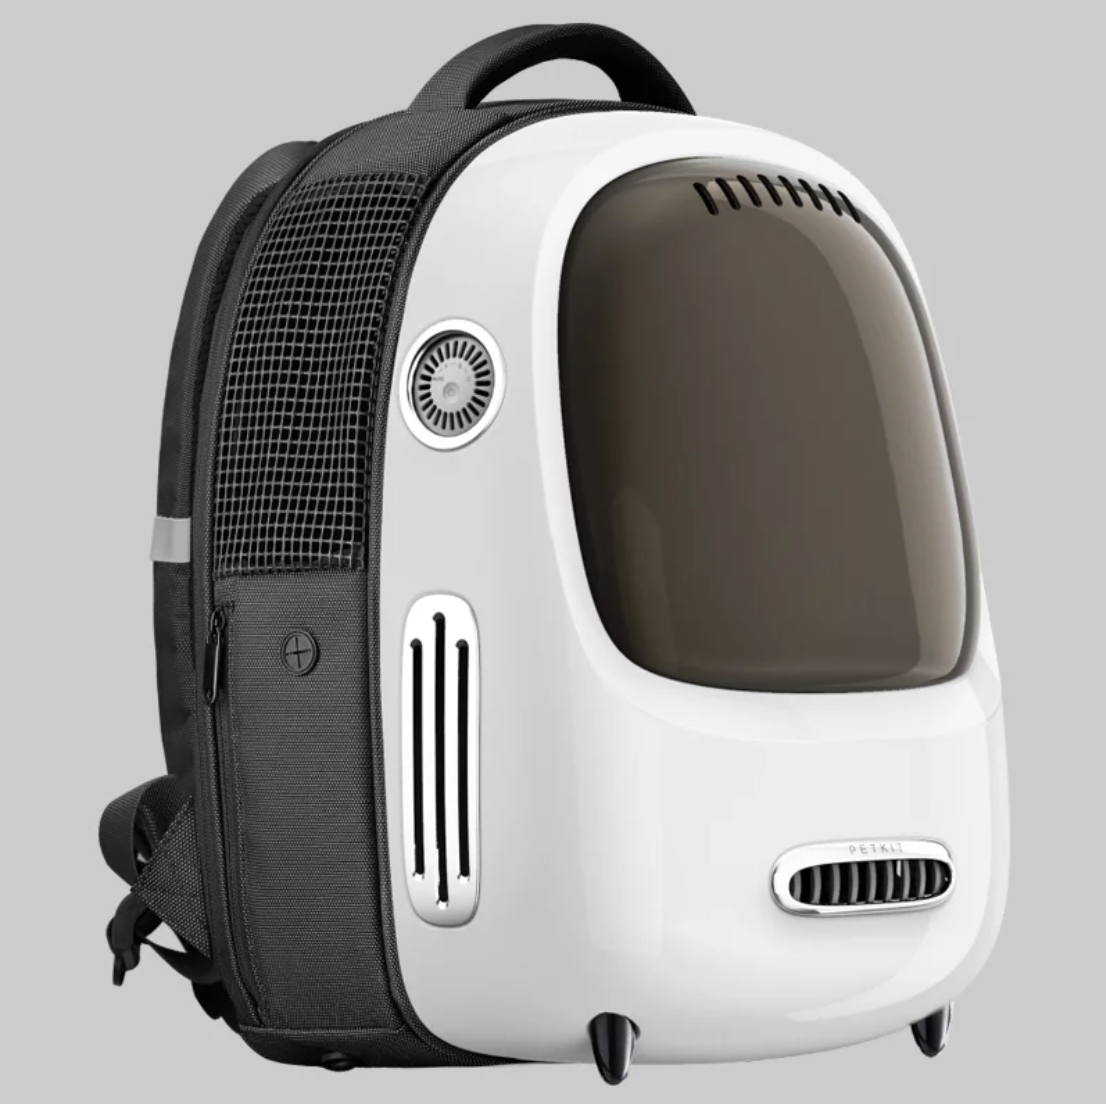 Petkit Breezy Cat Carrier (Built-in fan and light) - Catoro Cat Cafe